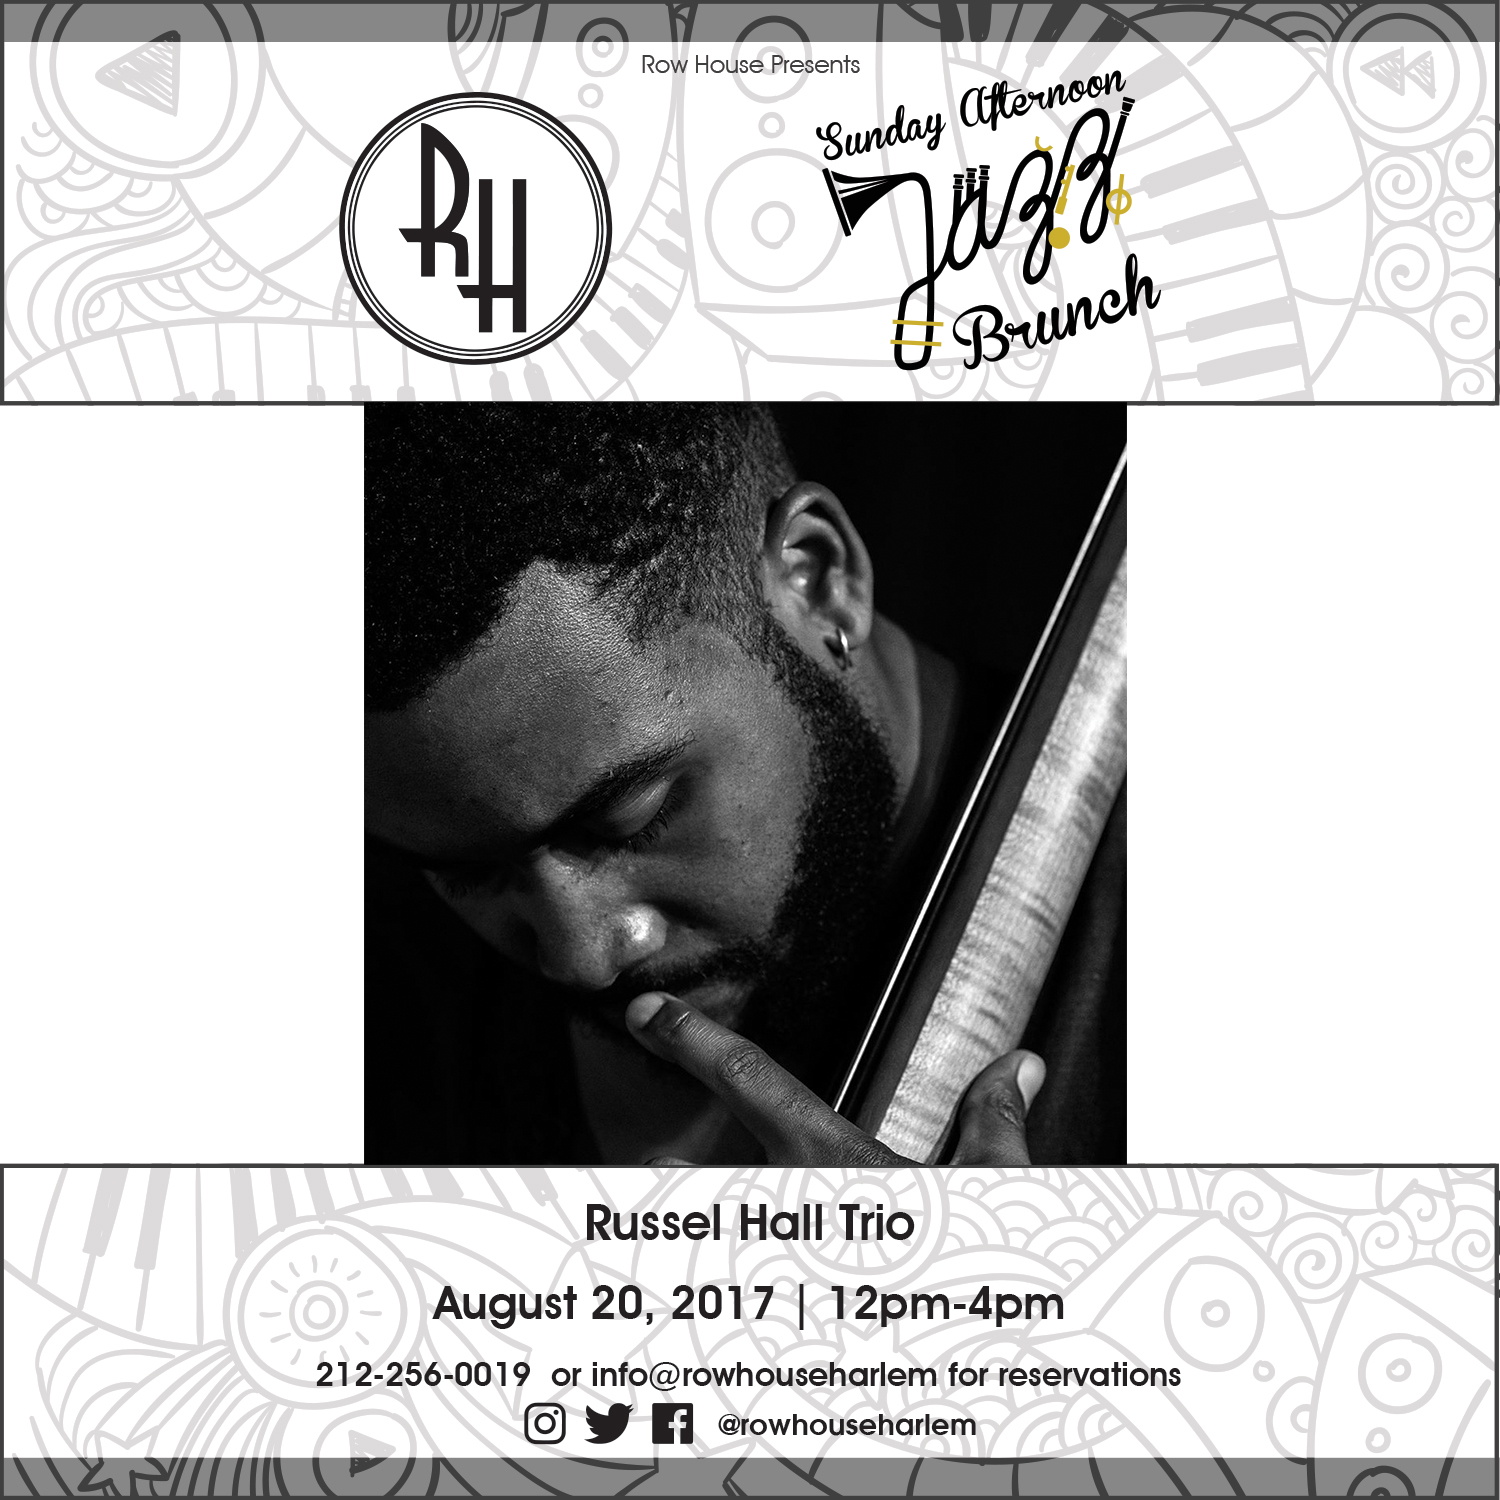 Russel Hall Trio